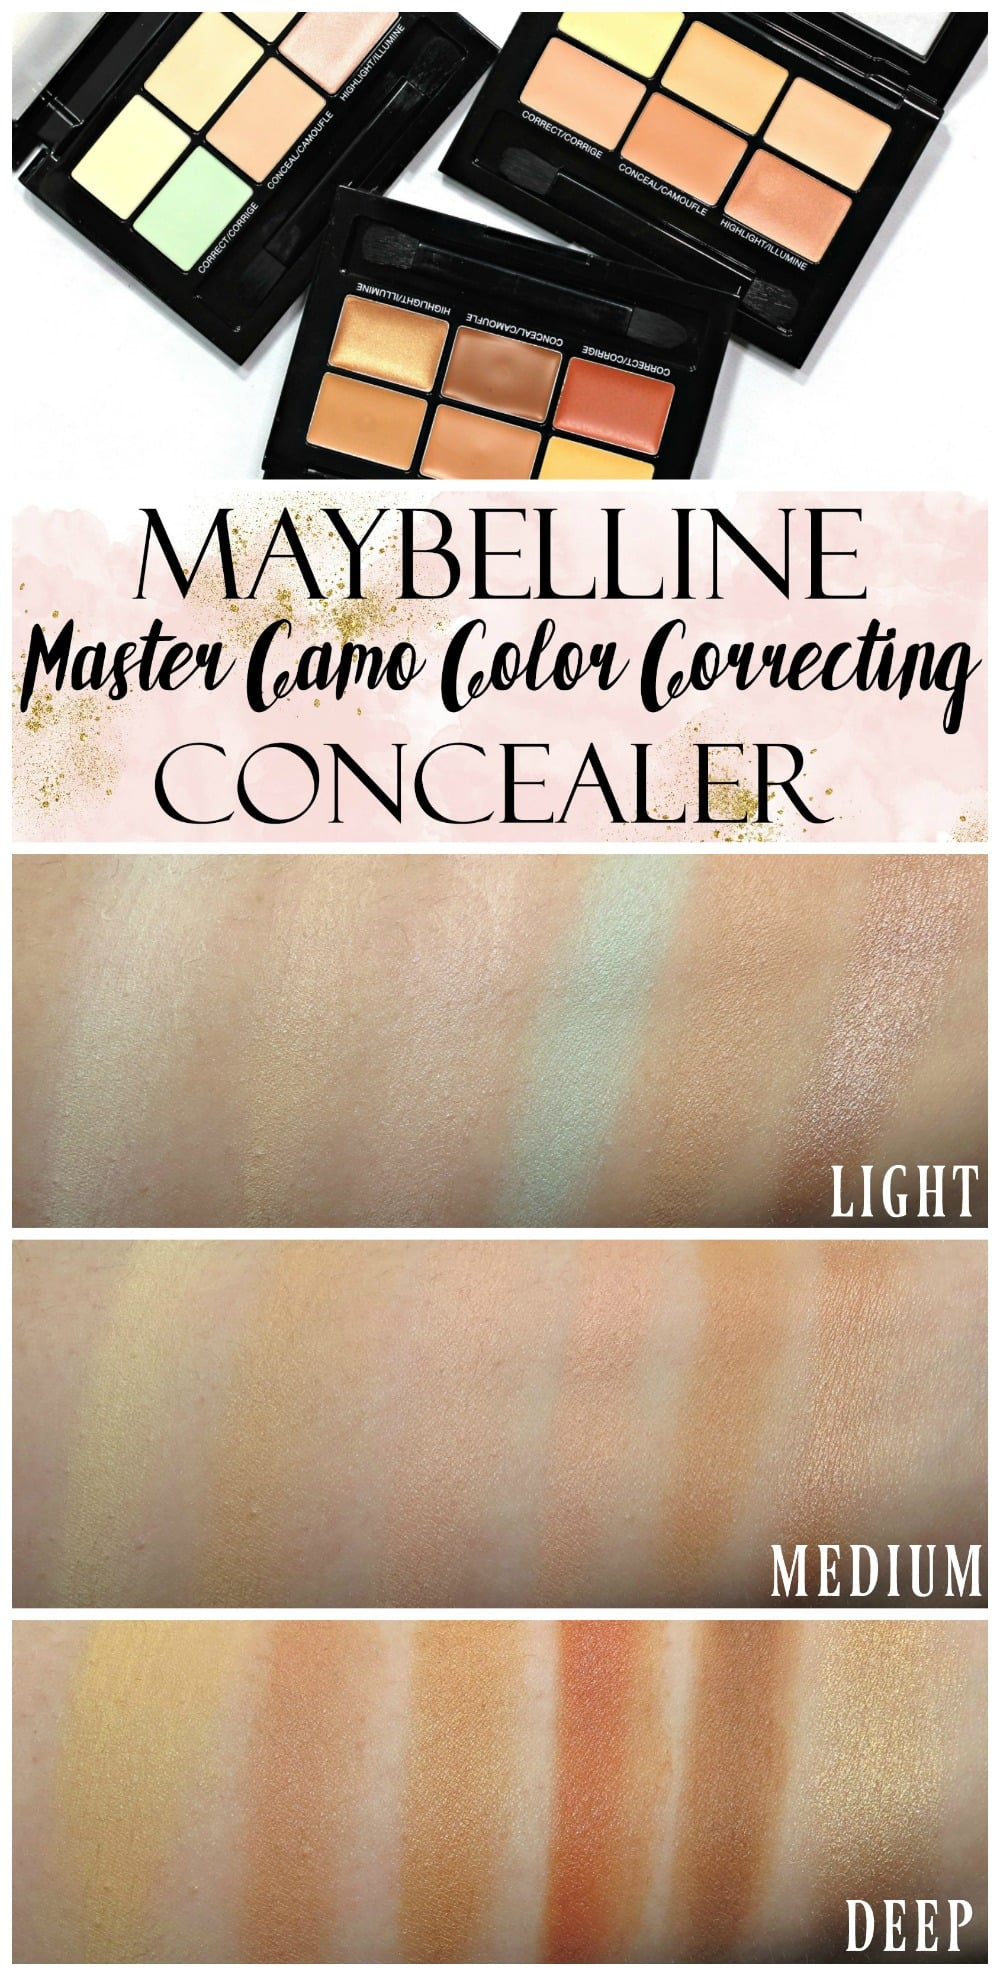 Fit Me Concealer by Maybelline #21